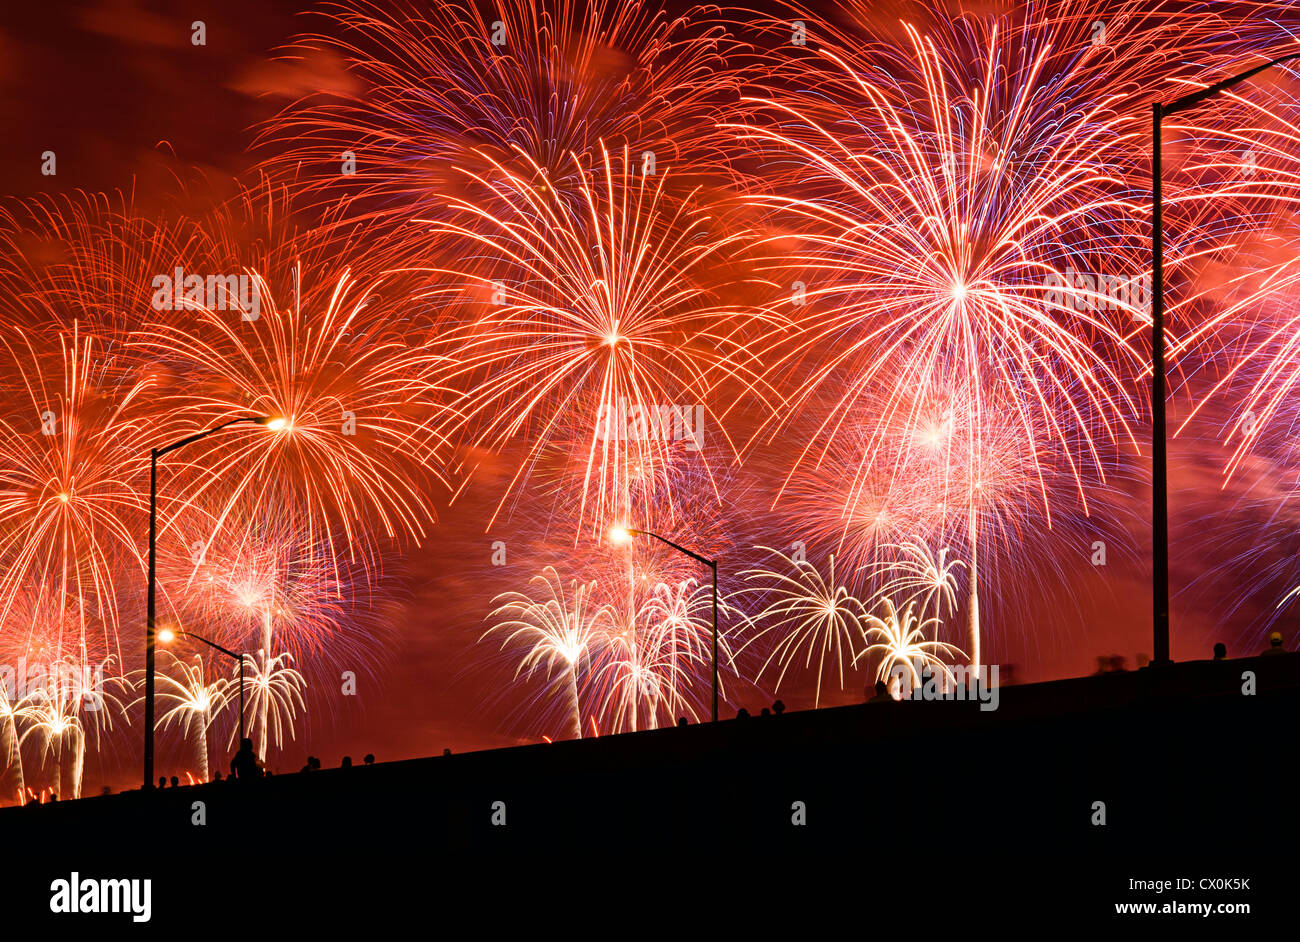 People watch Fourth of July Fireworks from elevated overpass. - Stock Image